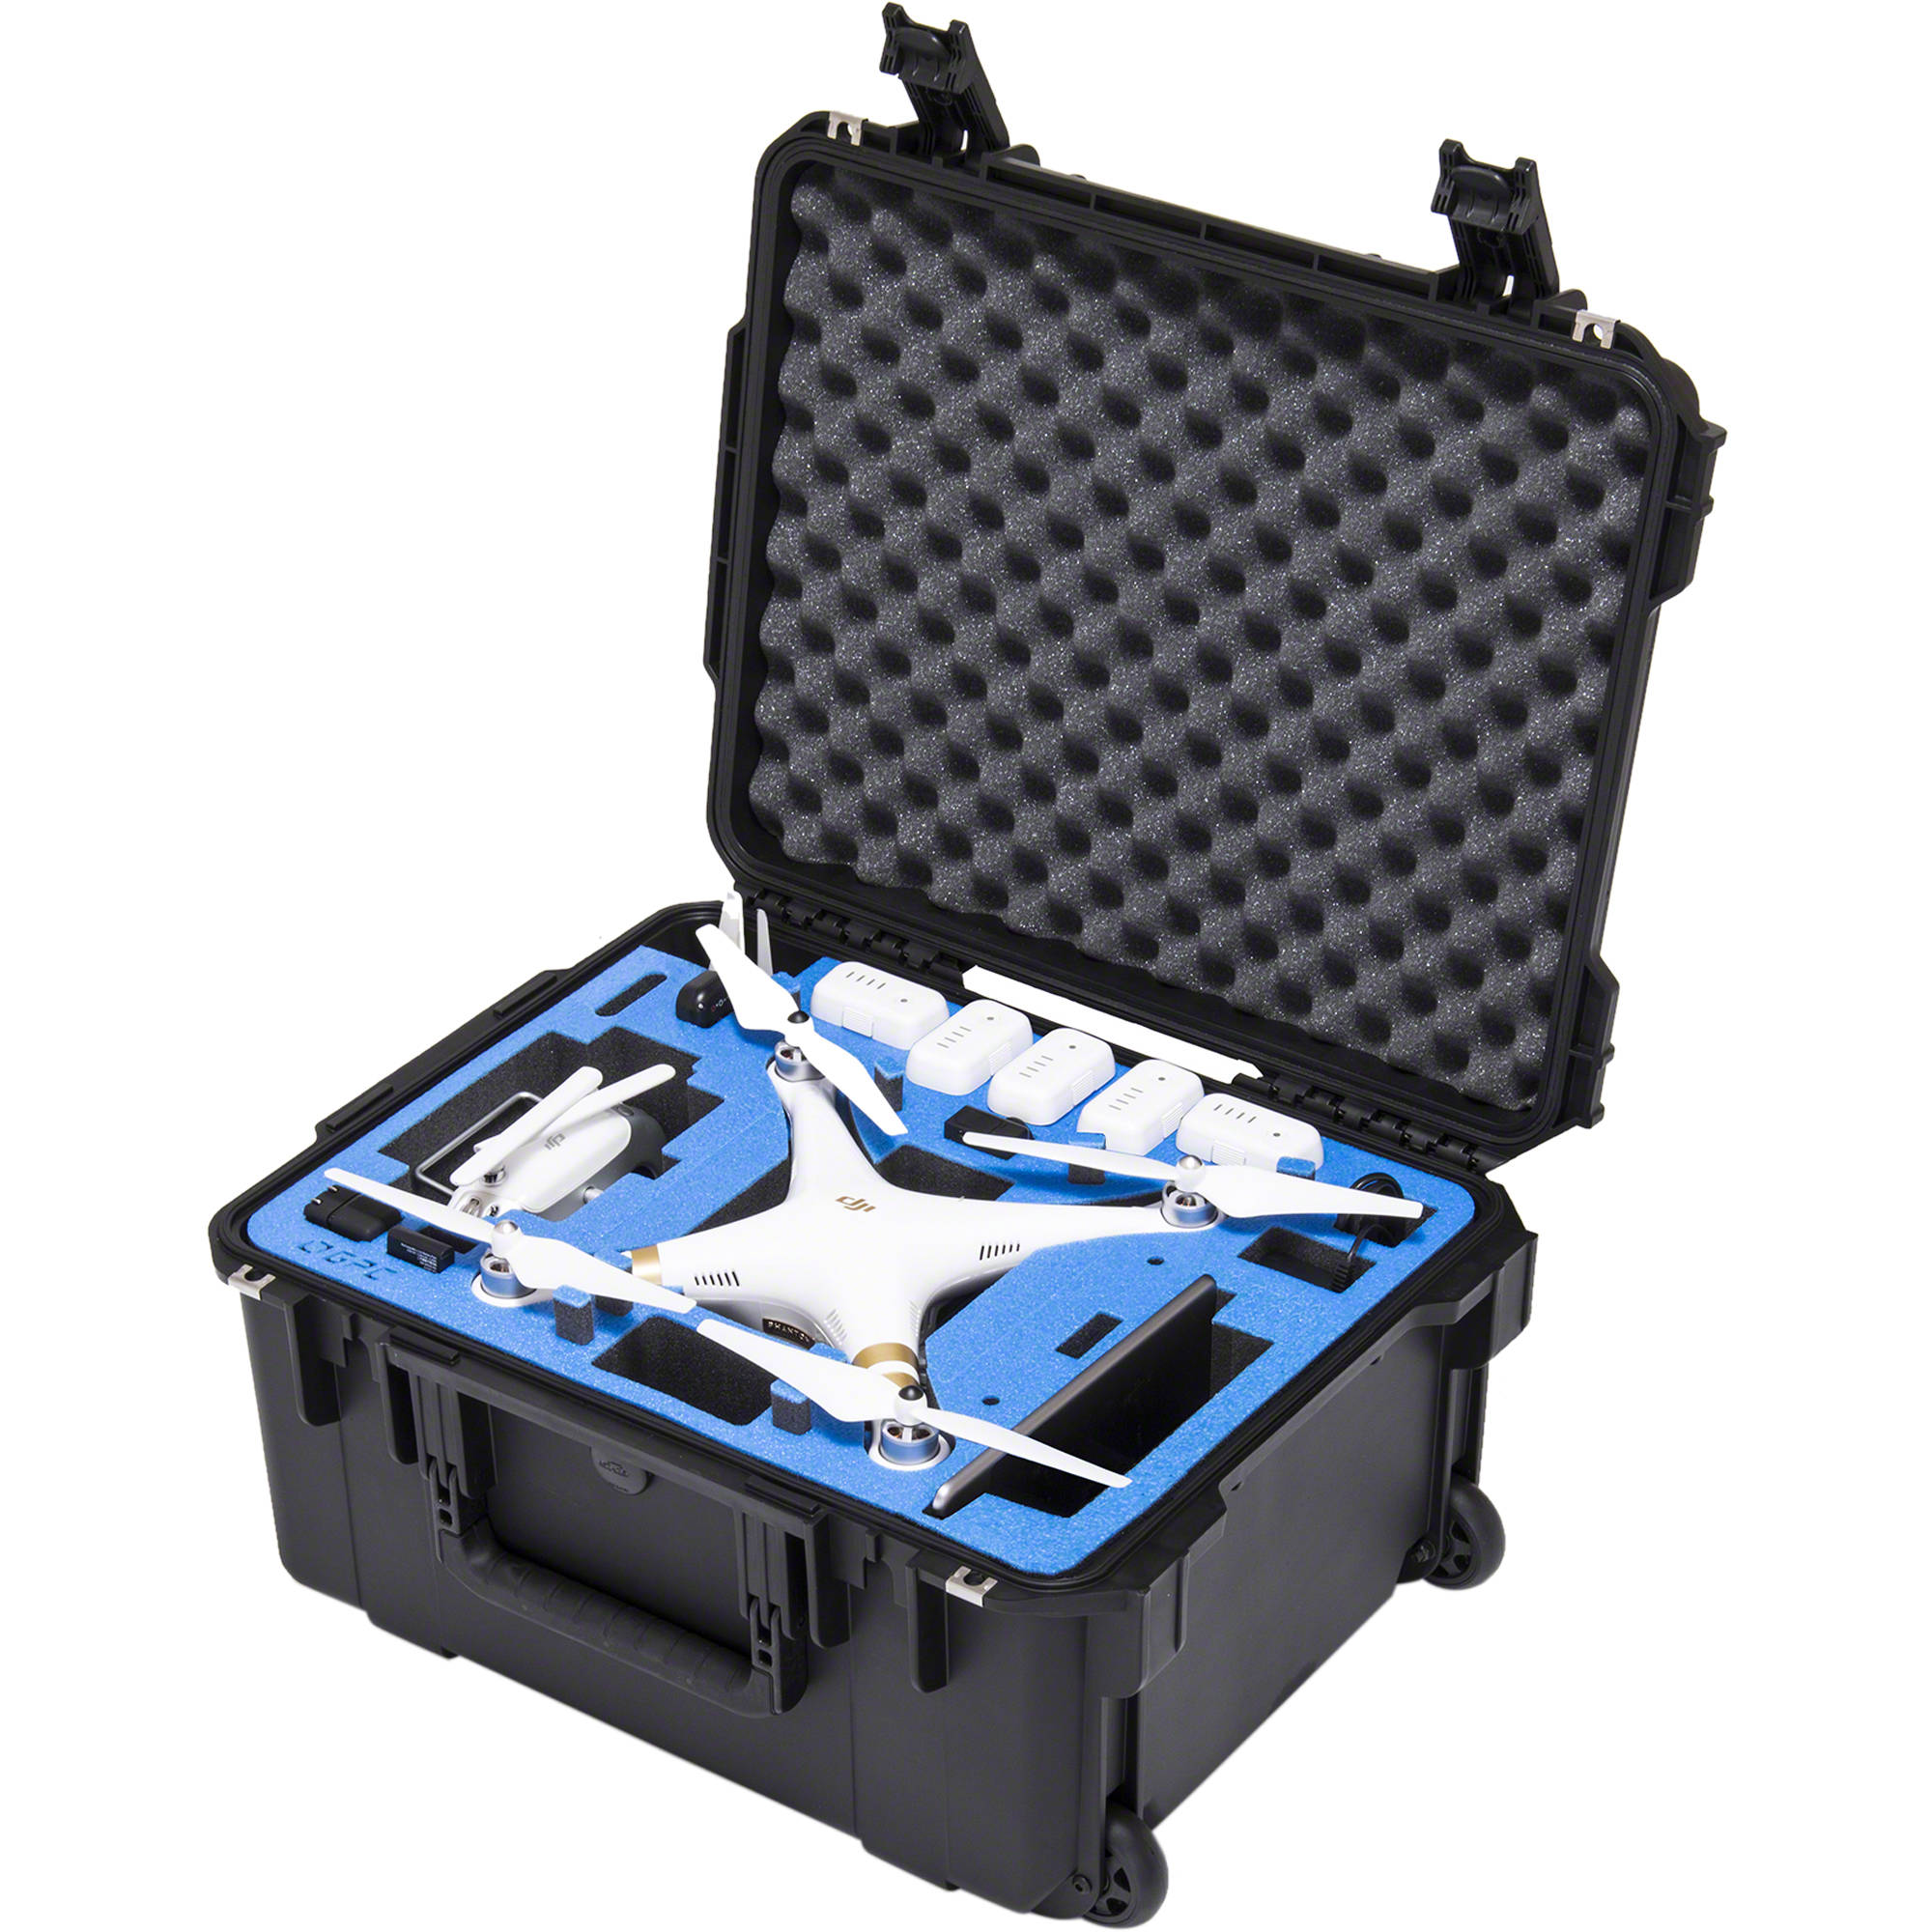 DJI Phantom 3 Plus Case